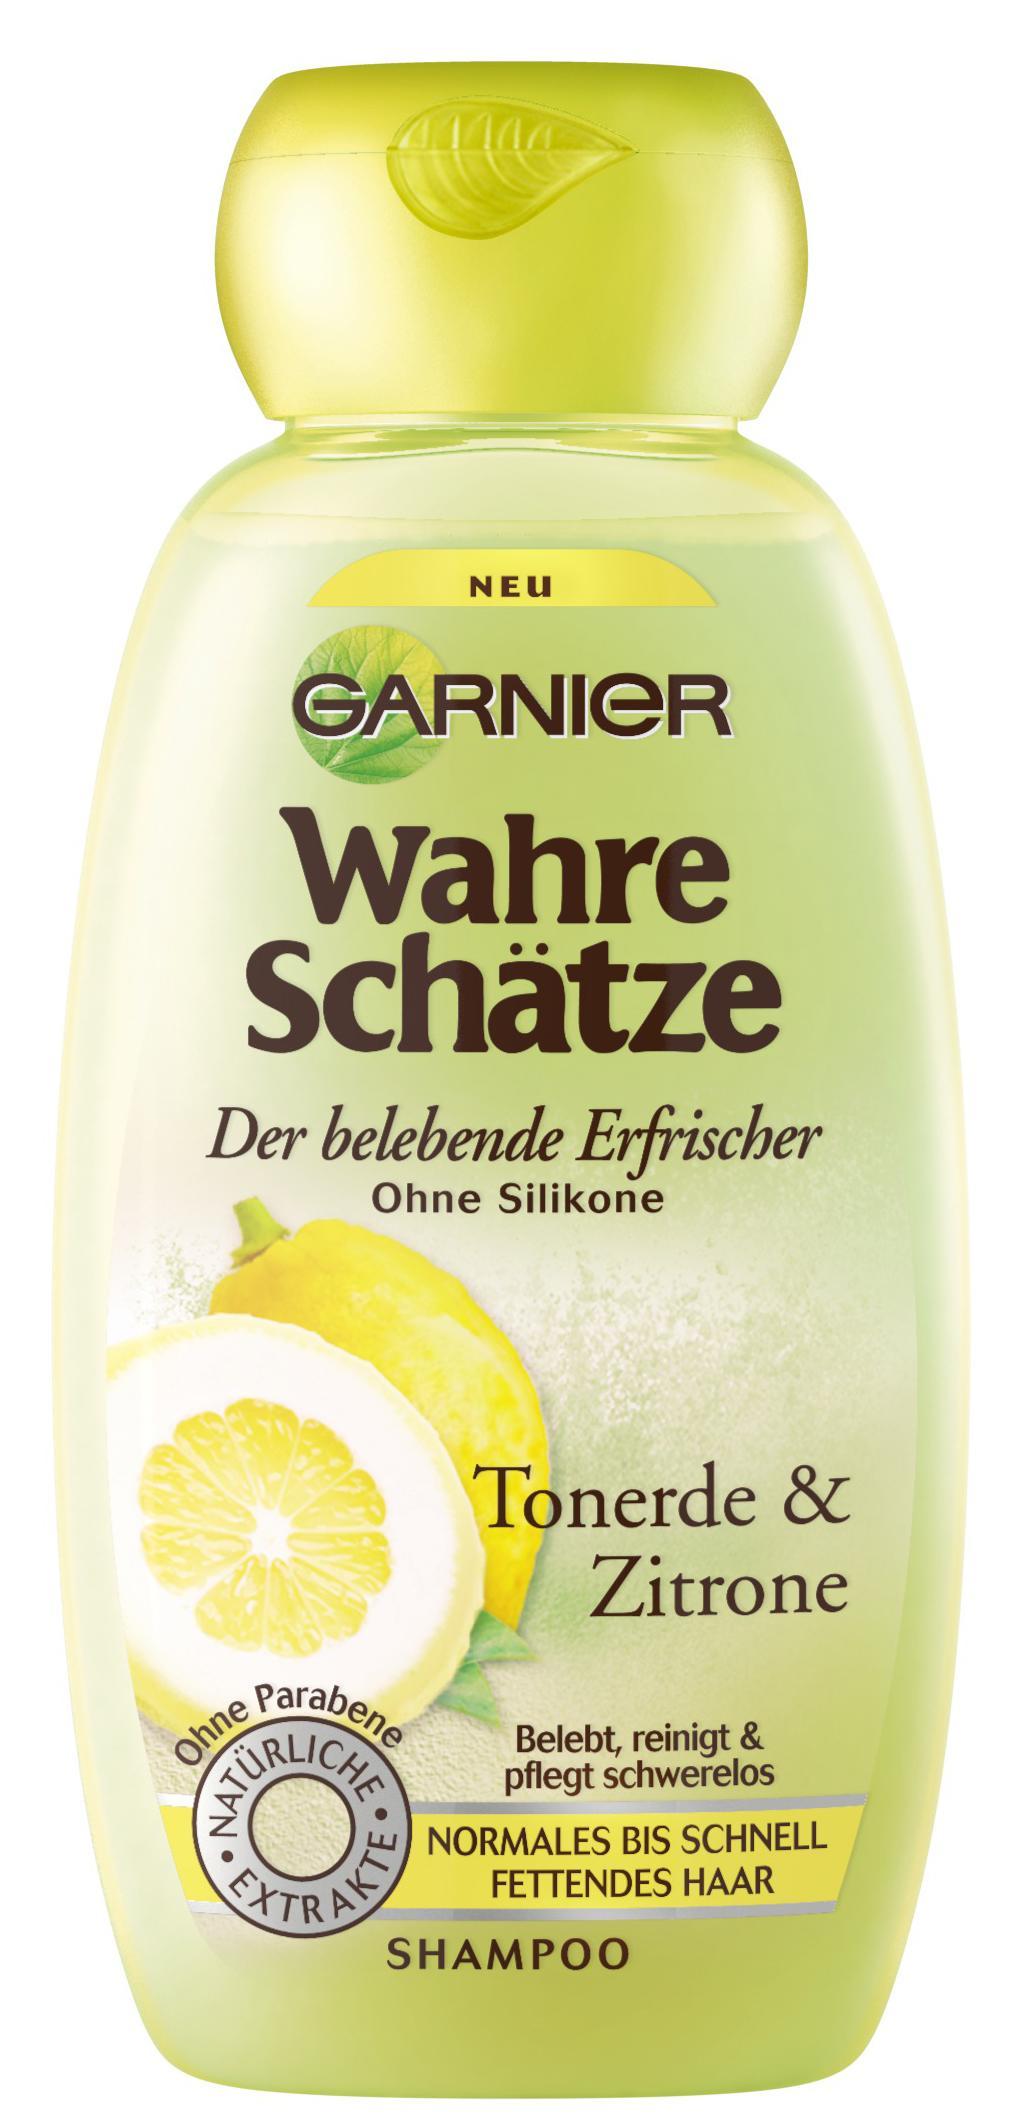 garnier wahre sch tze shampoo intensive haarpflege bis in die spitzen mit tonerde zitrone. Black Bedroom Furniture Sets. Home Design Ideas